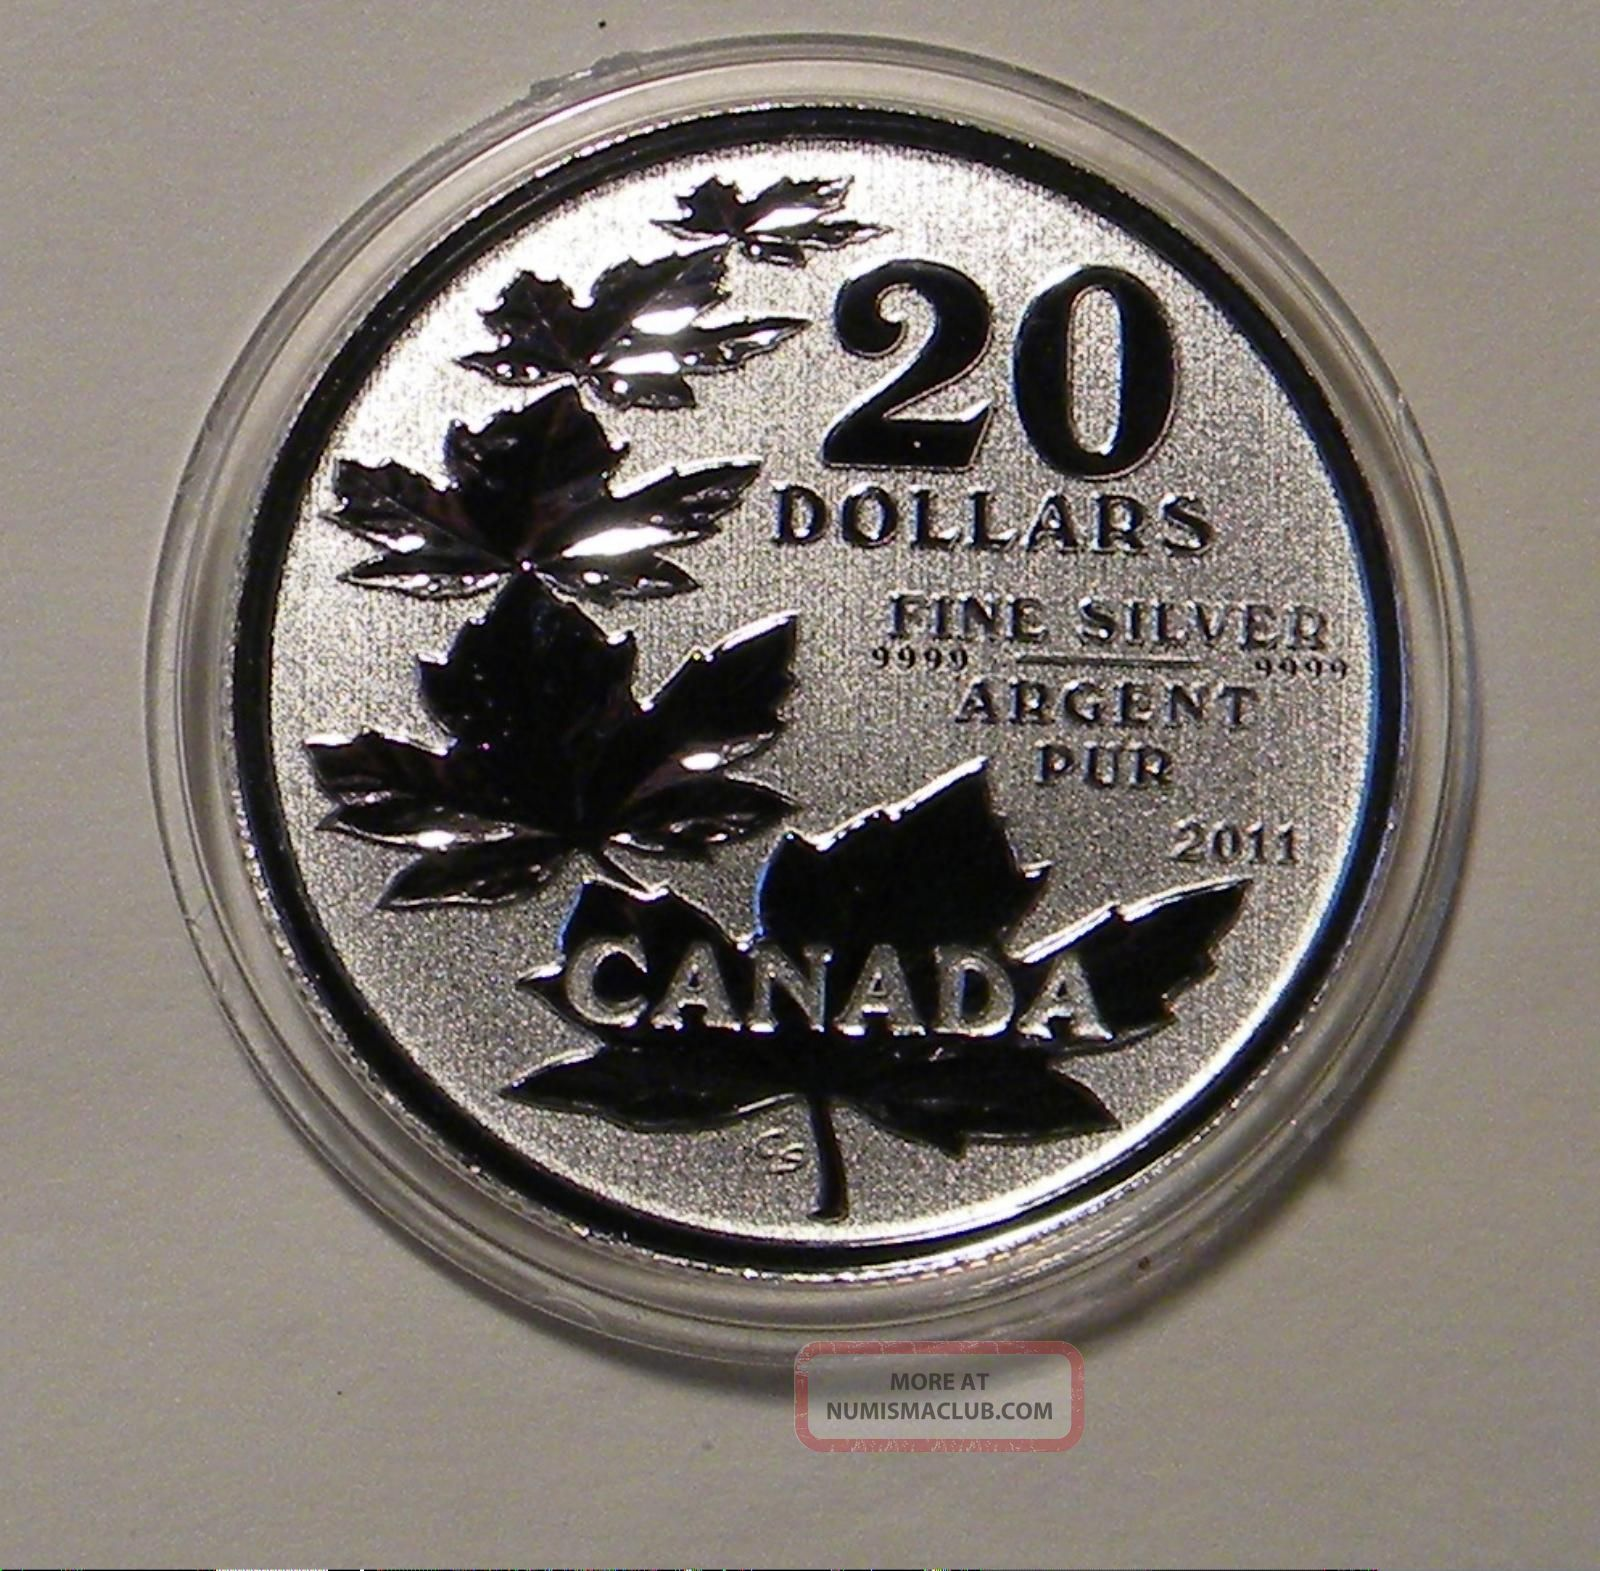 2011 Canada.  9999 Silver $20 Maple Leaf Coin In Capsule Coins: Canada photo